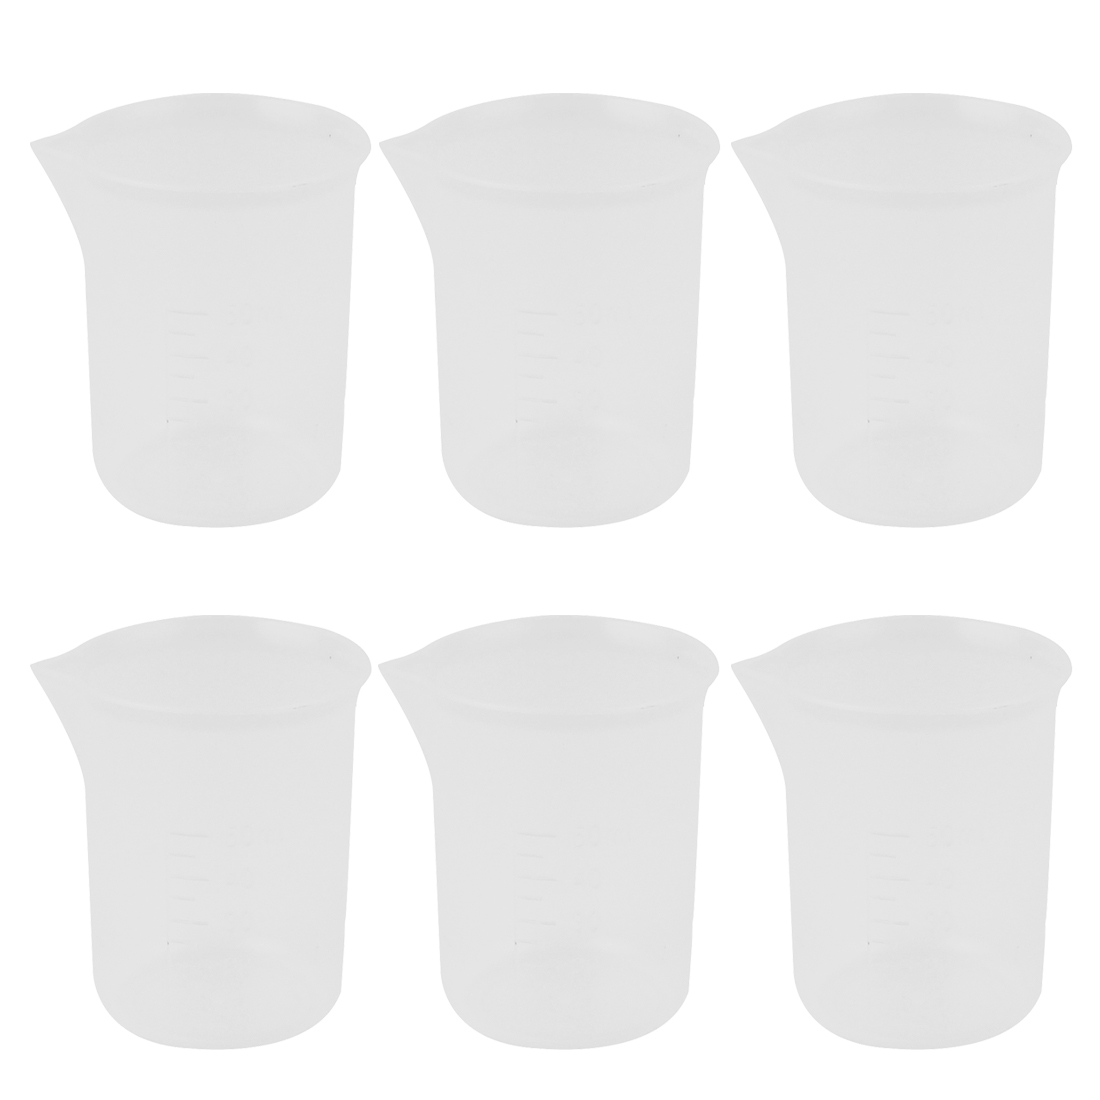 6 Pcs School Lab Plastic Liquid Container Measuring Testing Beaker 50mL Capacity